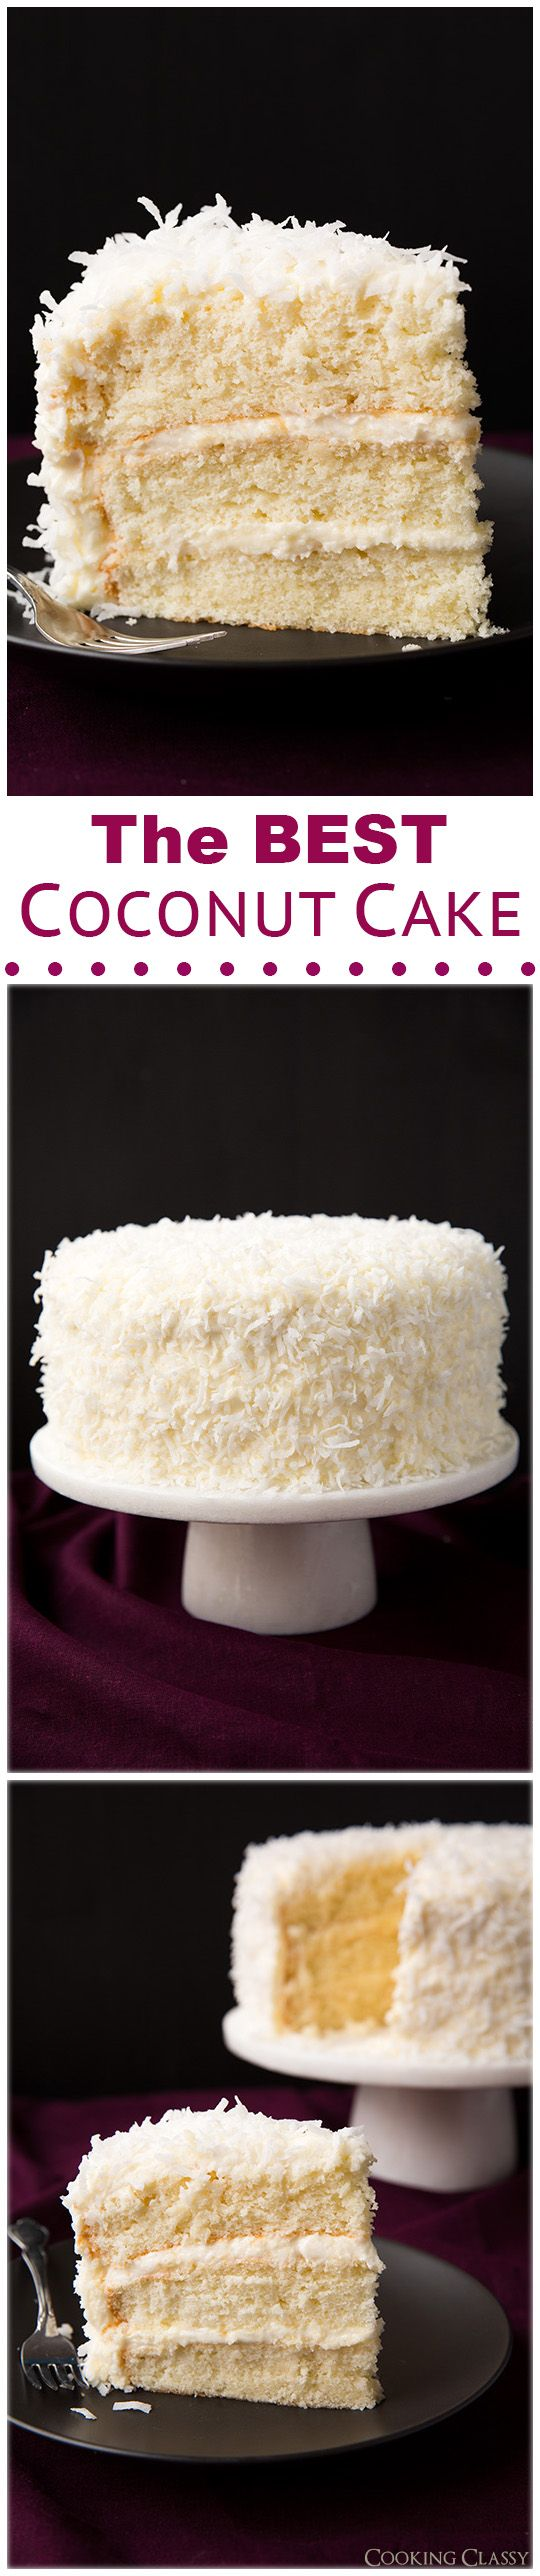 coconut cake recipe national cake day